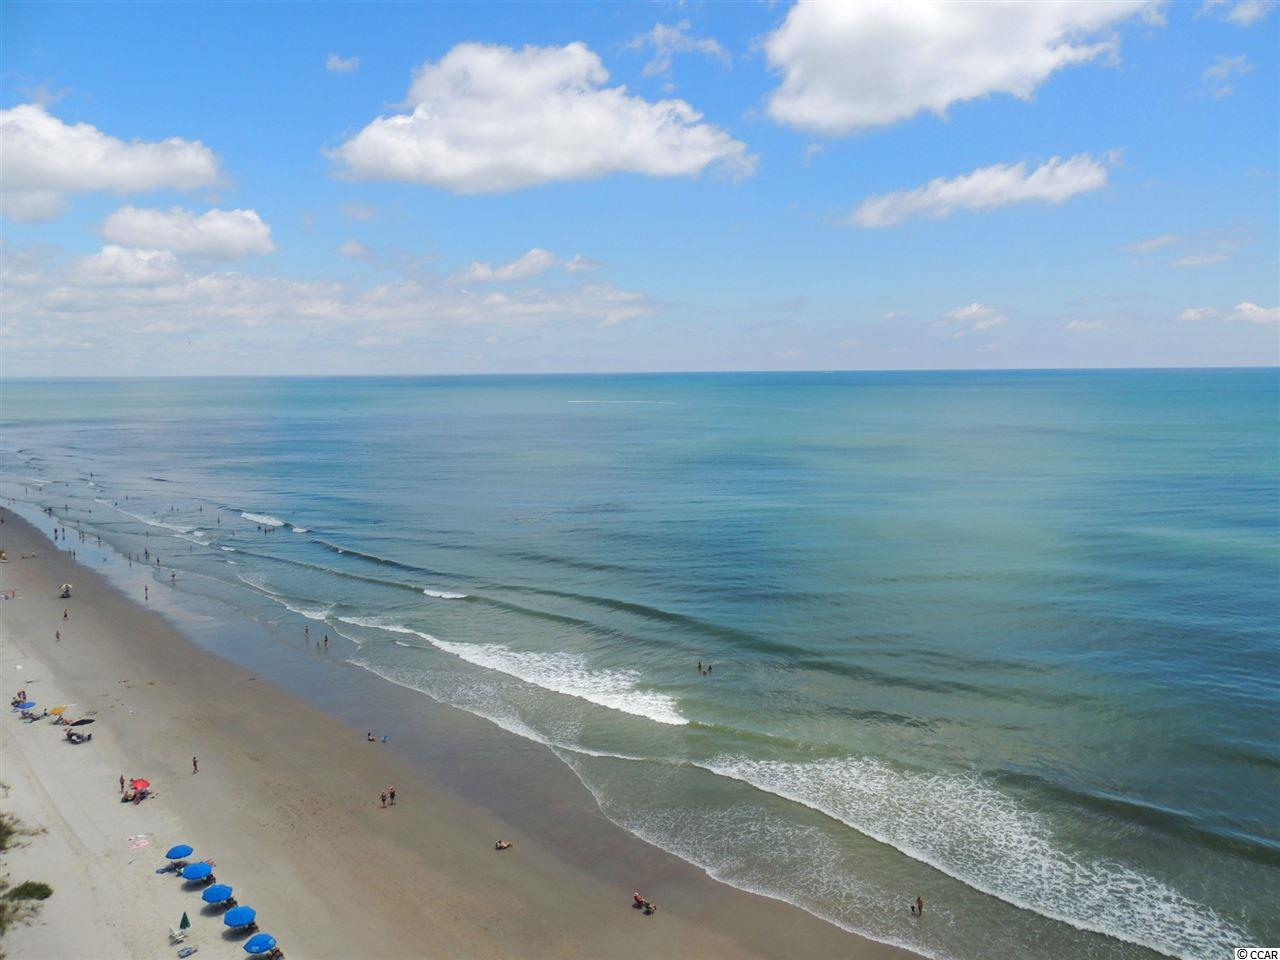 MLS #1714692 at  SURFMASTER II for sale